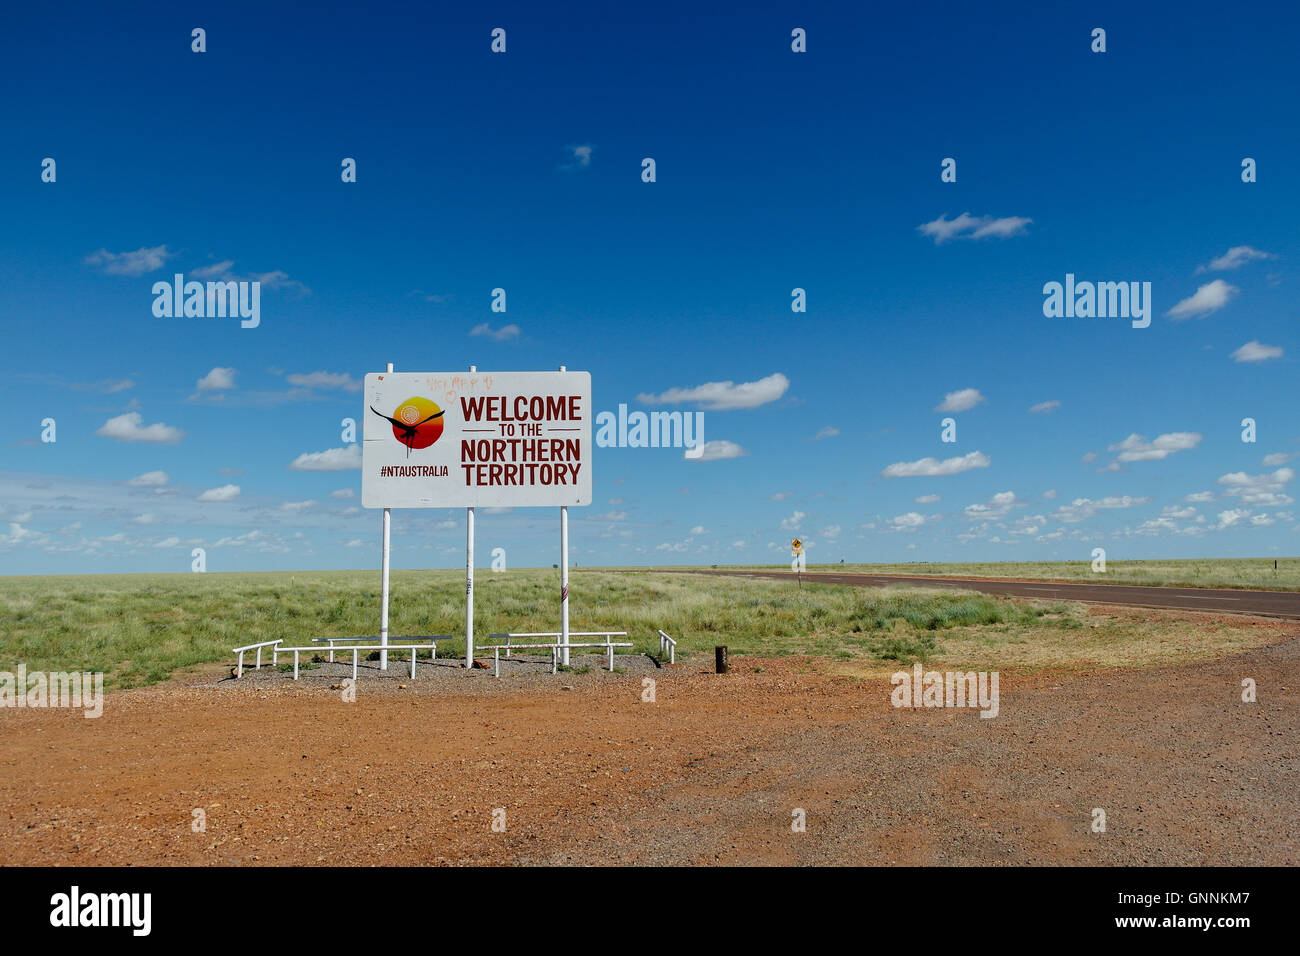 Welcome to Northern Territory road sign in Central Australia - Australia - Stock Image